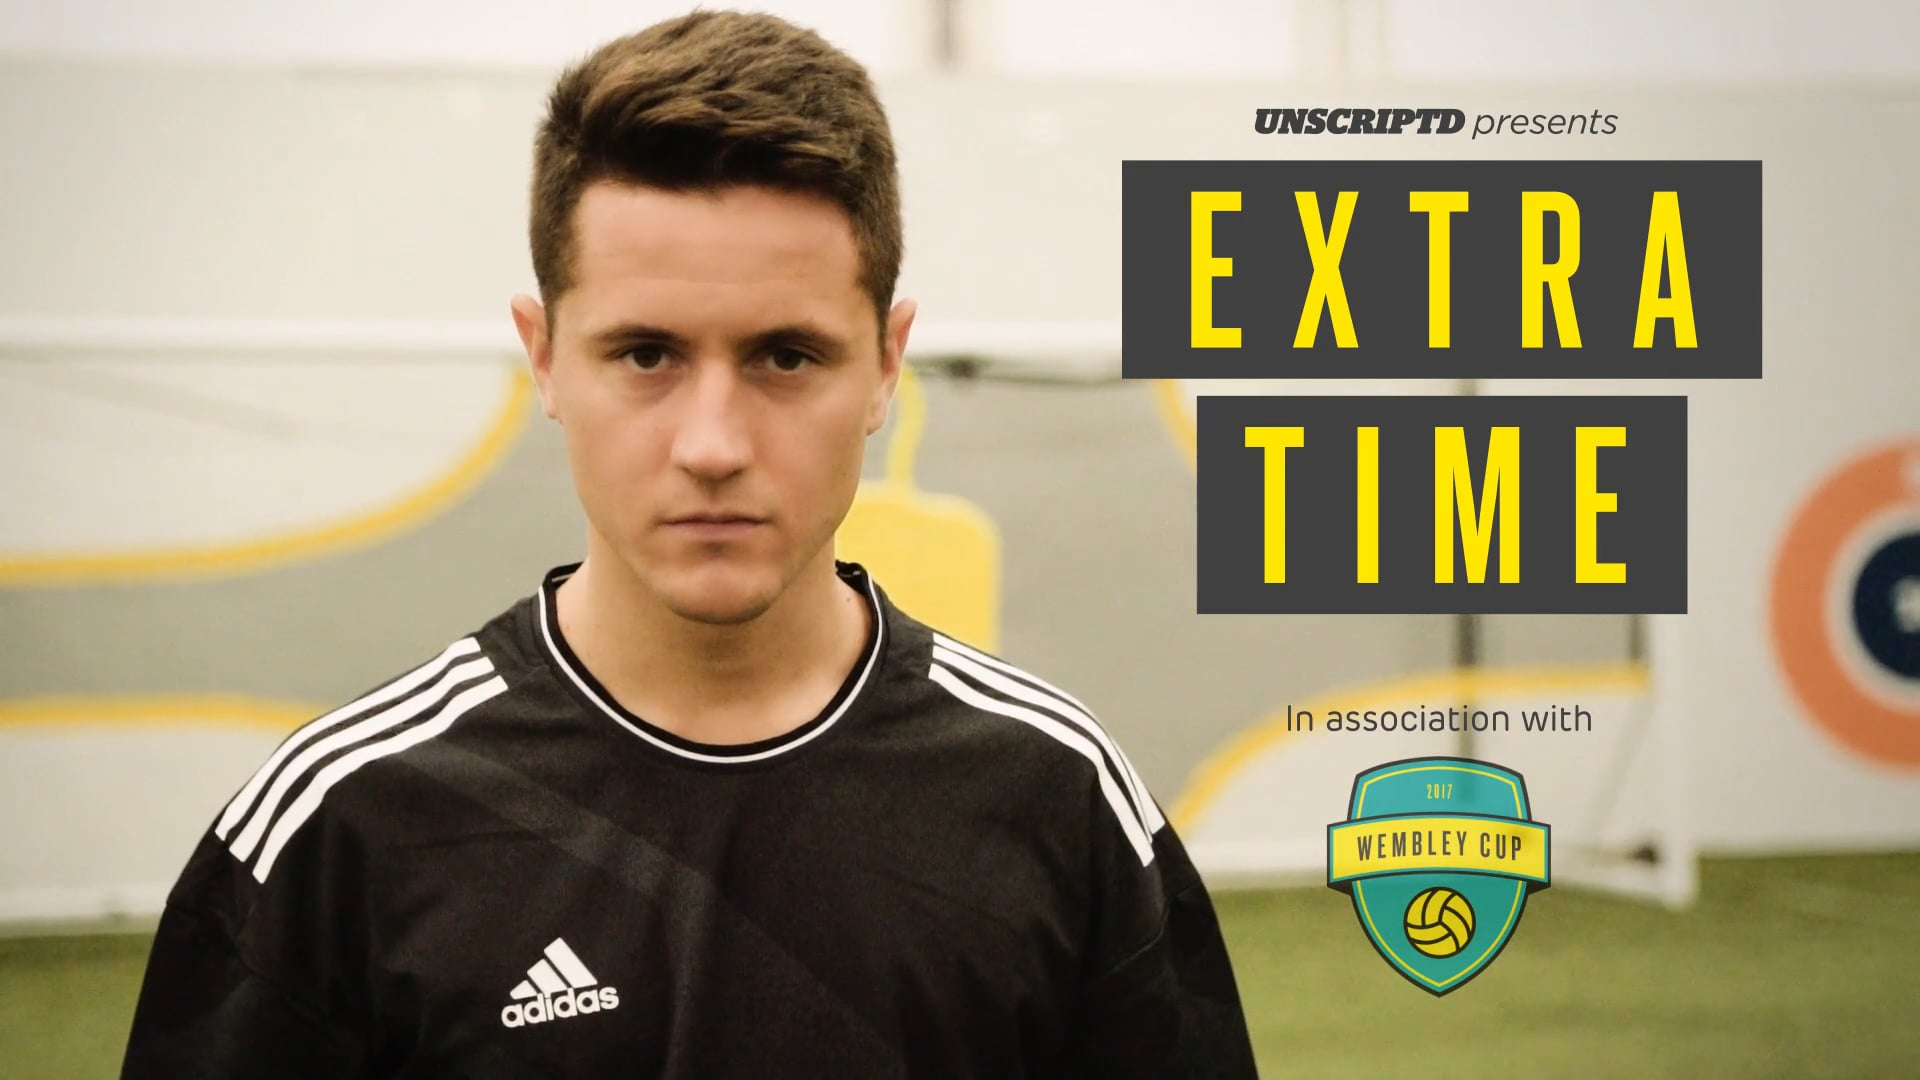 EE Wembley Cup Extra Time with Ander Herrera - Deadly Finishing